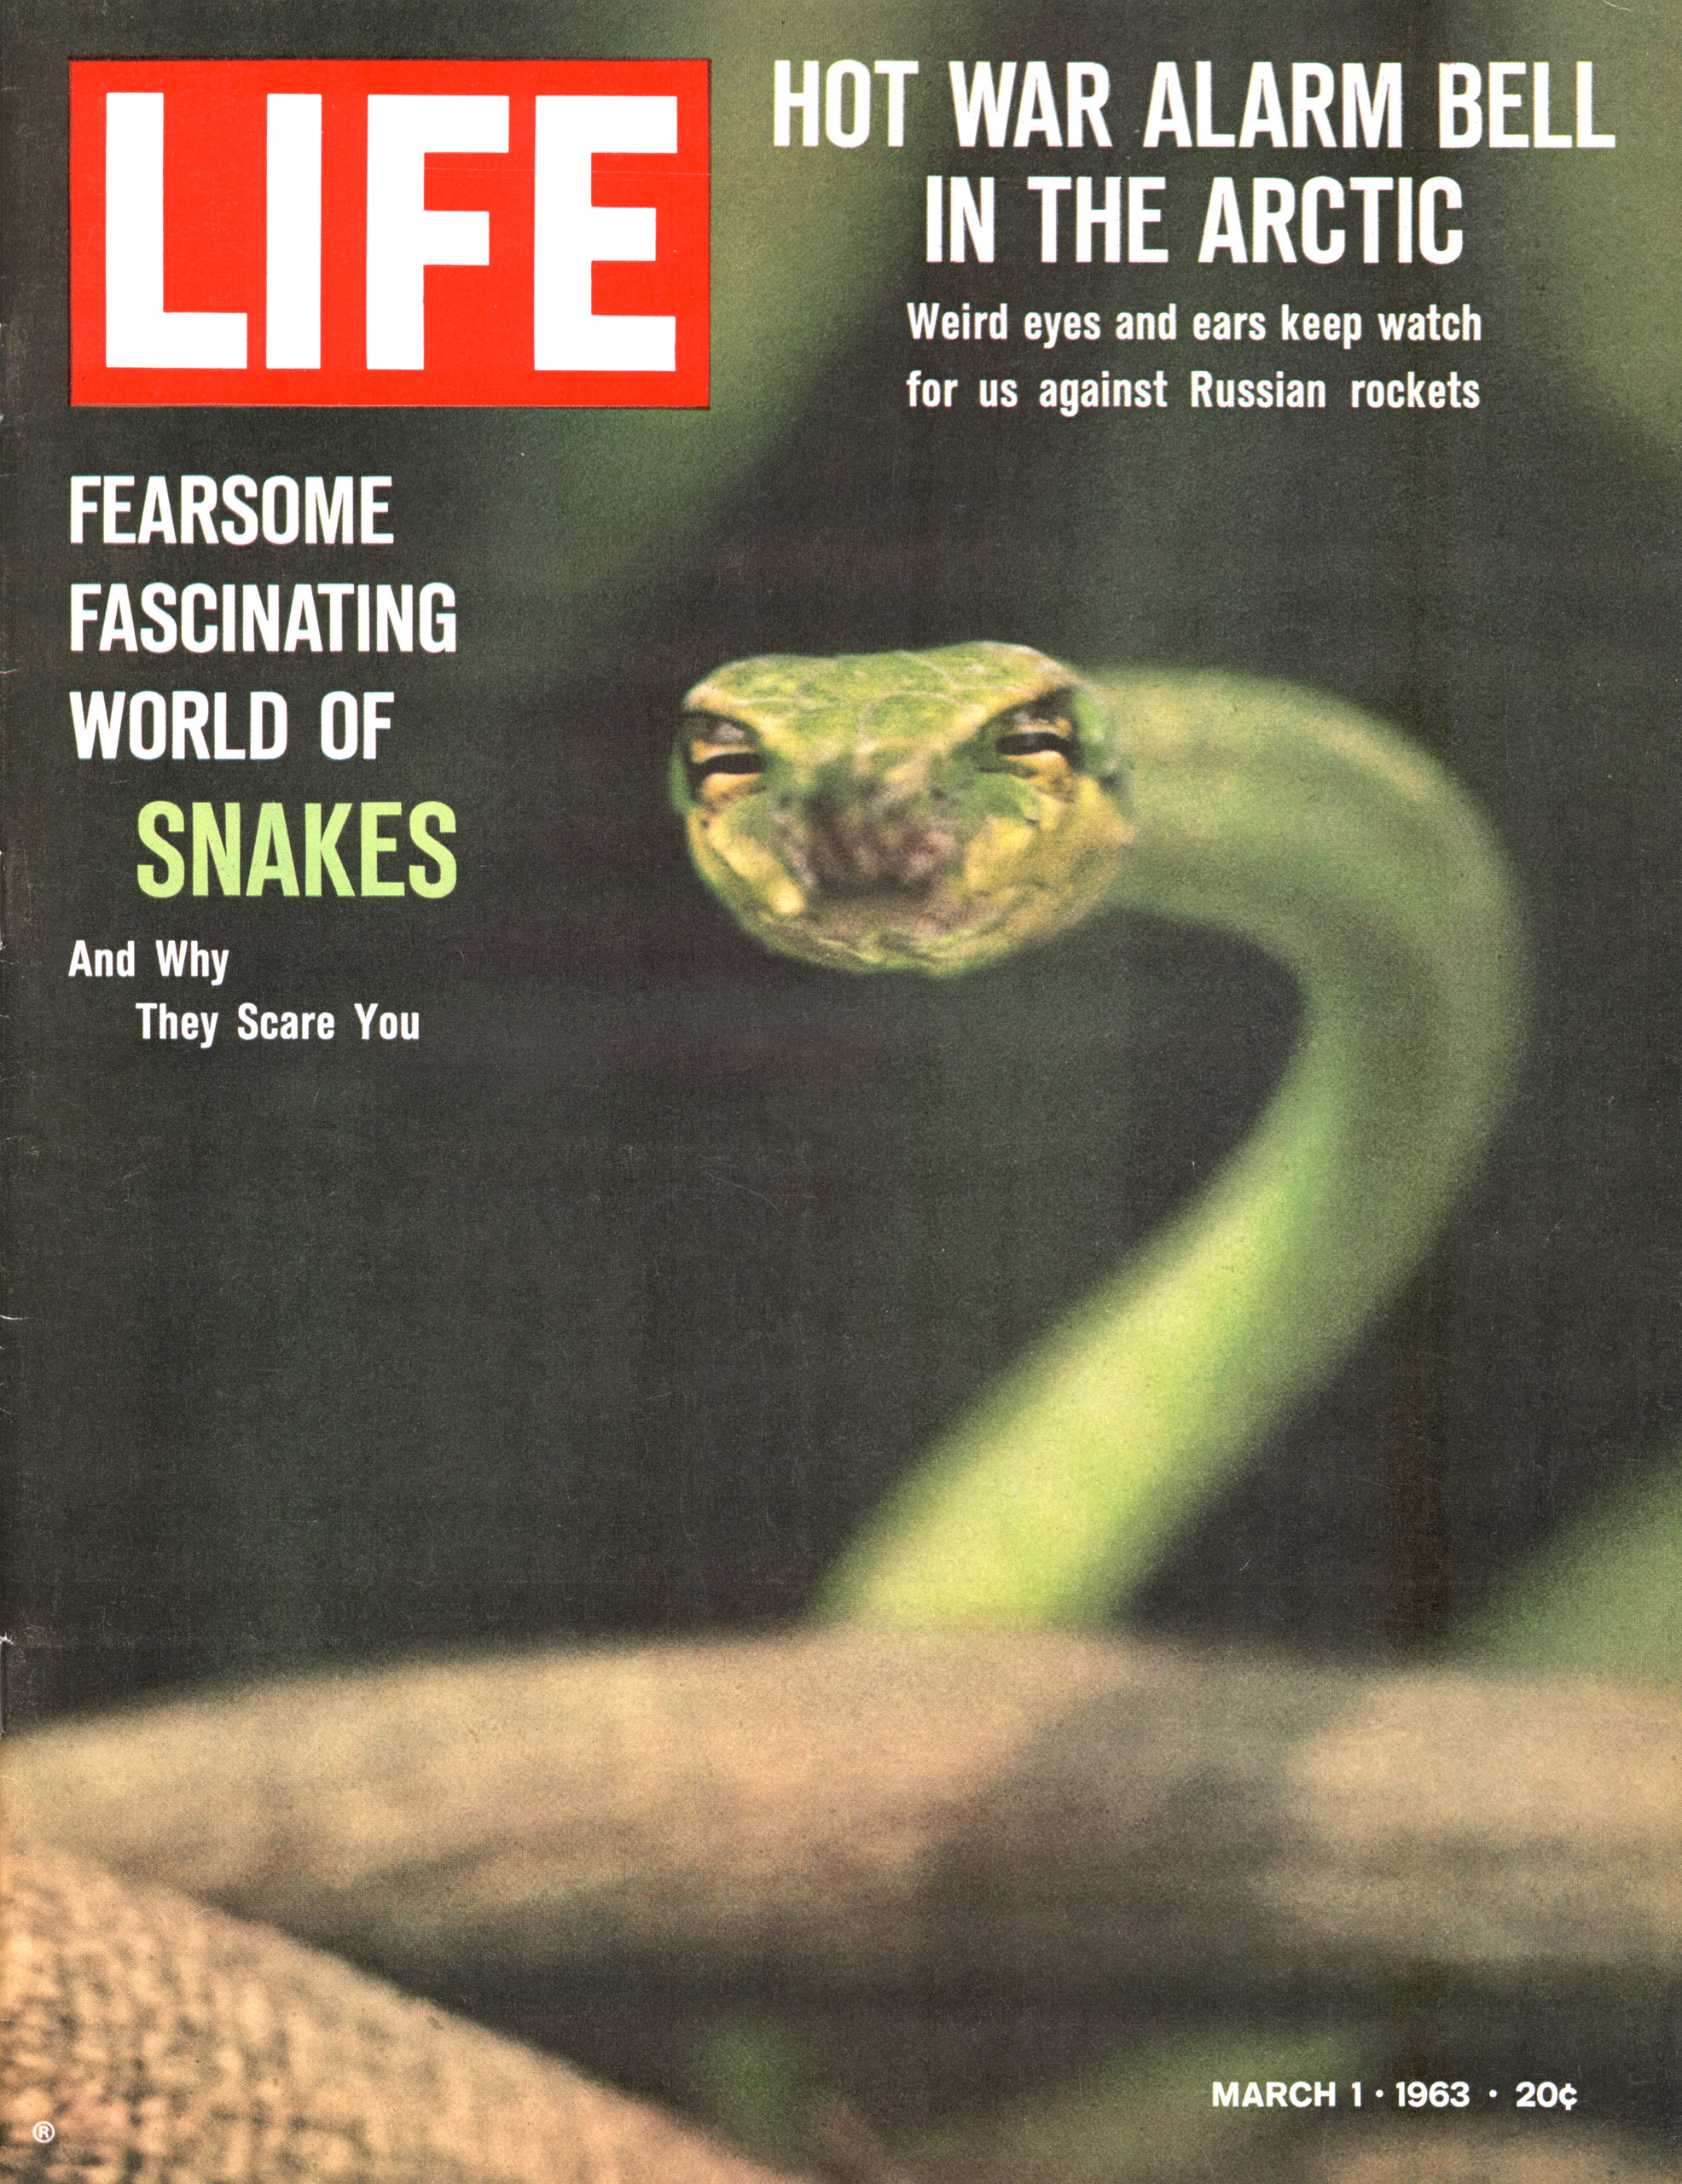 March 1, 1963 LIFE Magazine cover (photo by Nina Leen).